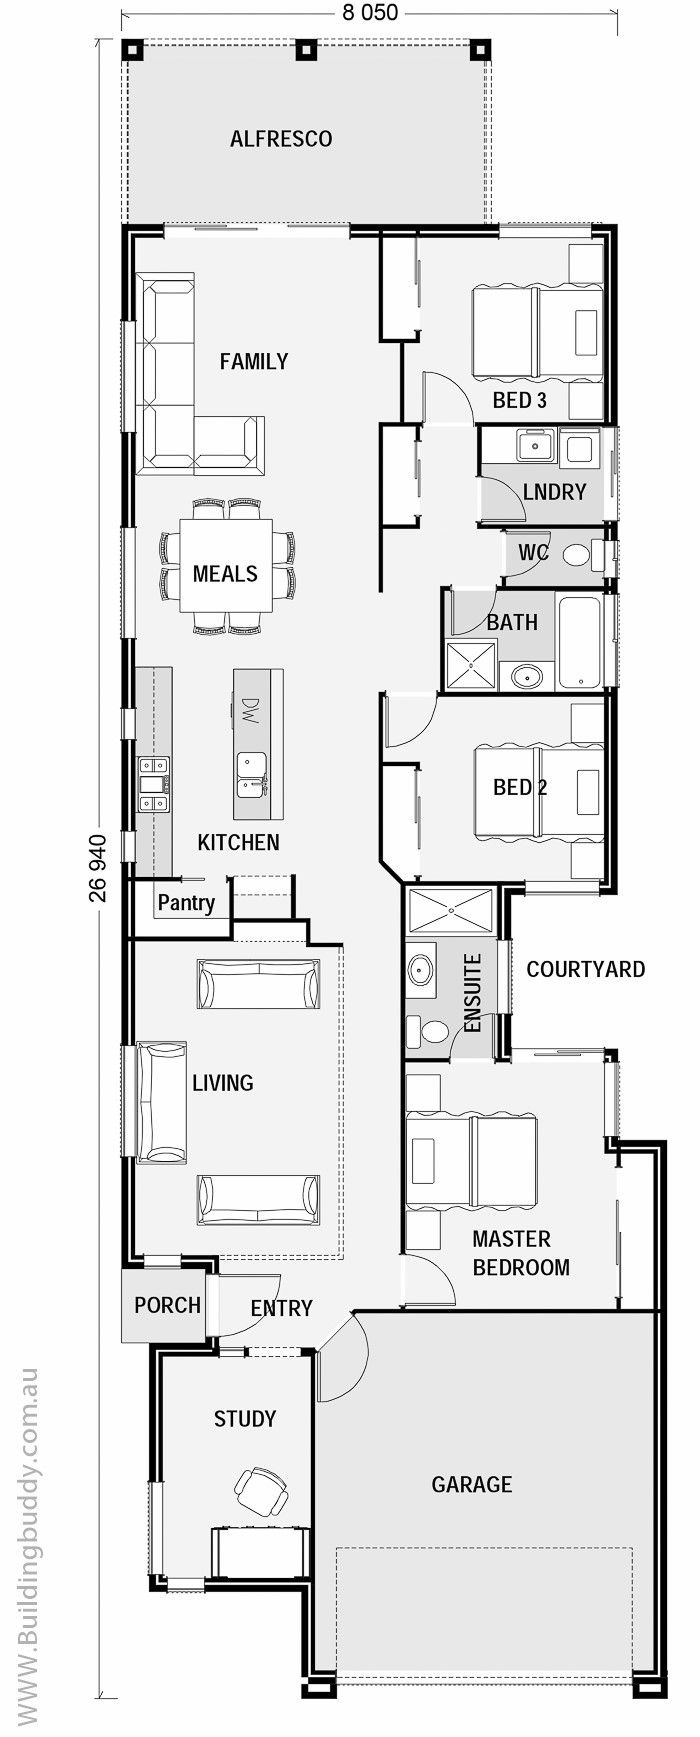 New House Plans and Prices Beautiful House Plans Home Designs Building Prices & Builders Small